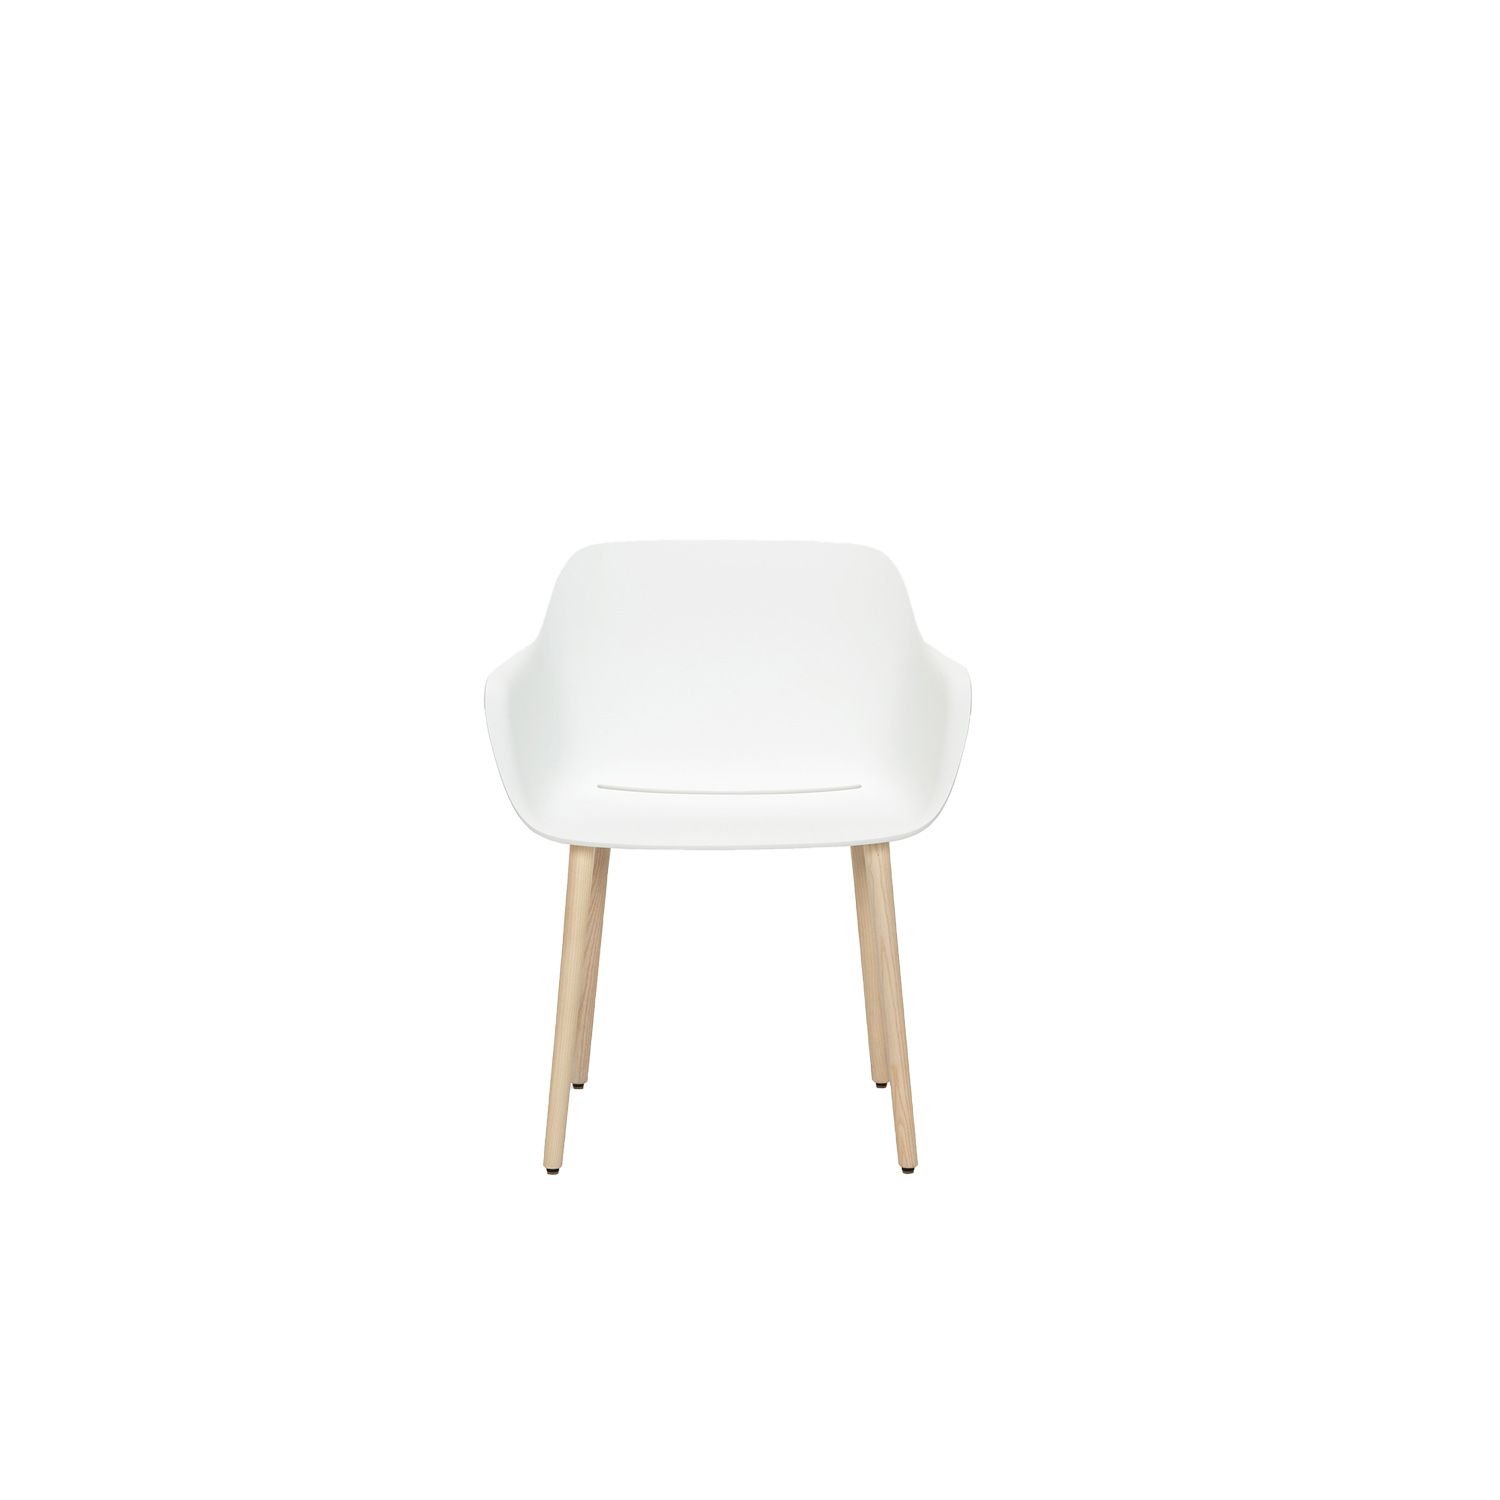 """Babila XL Armchair - Babila XL fits harmoniously within a collection poised between tradition and innovation. An armchair with a polypropylene shell stands out for the large dimension of its seat and armrests. Solid ash wood legs. Babila XL also comes in a version made entirely from recycled material: 50% from plastic material post-consumer waste and 50% from plastic material industrial waste. Babila XL """"recycled grey"""" is one of the first Pedrali products made from recycled polypropylene. 